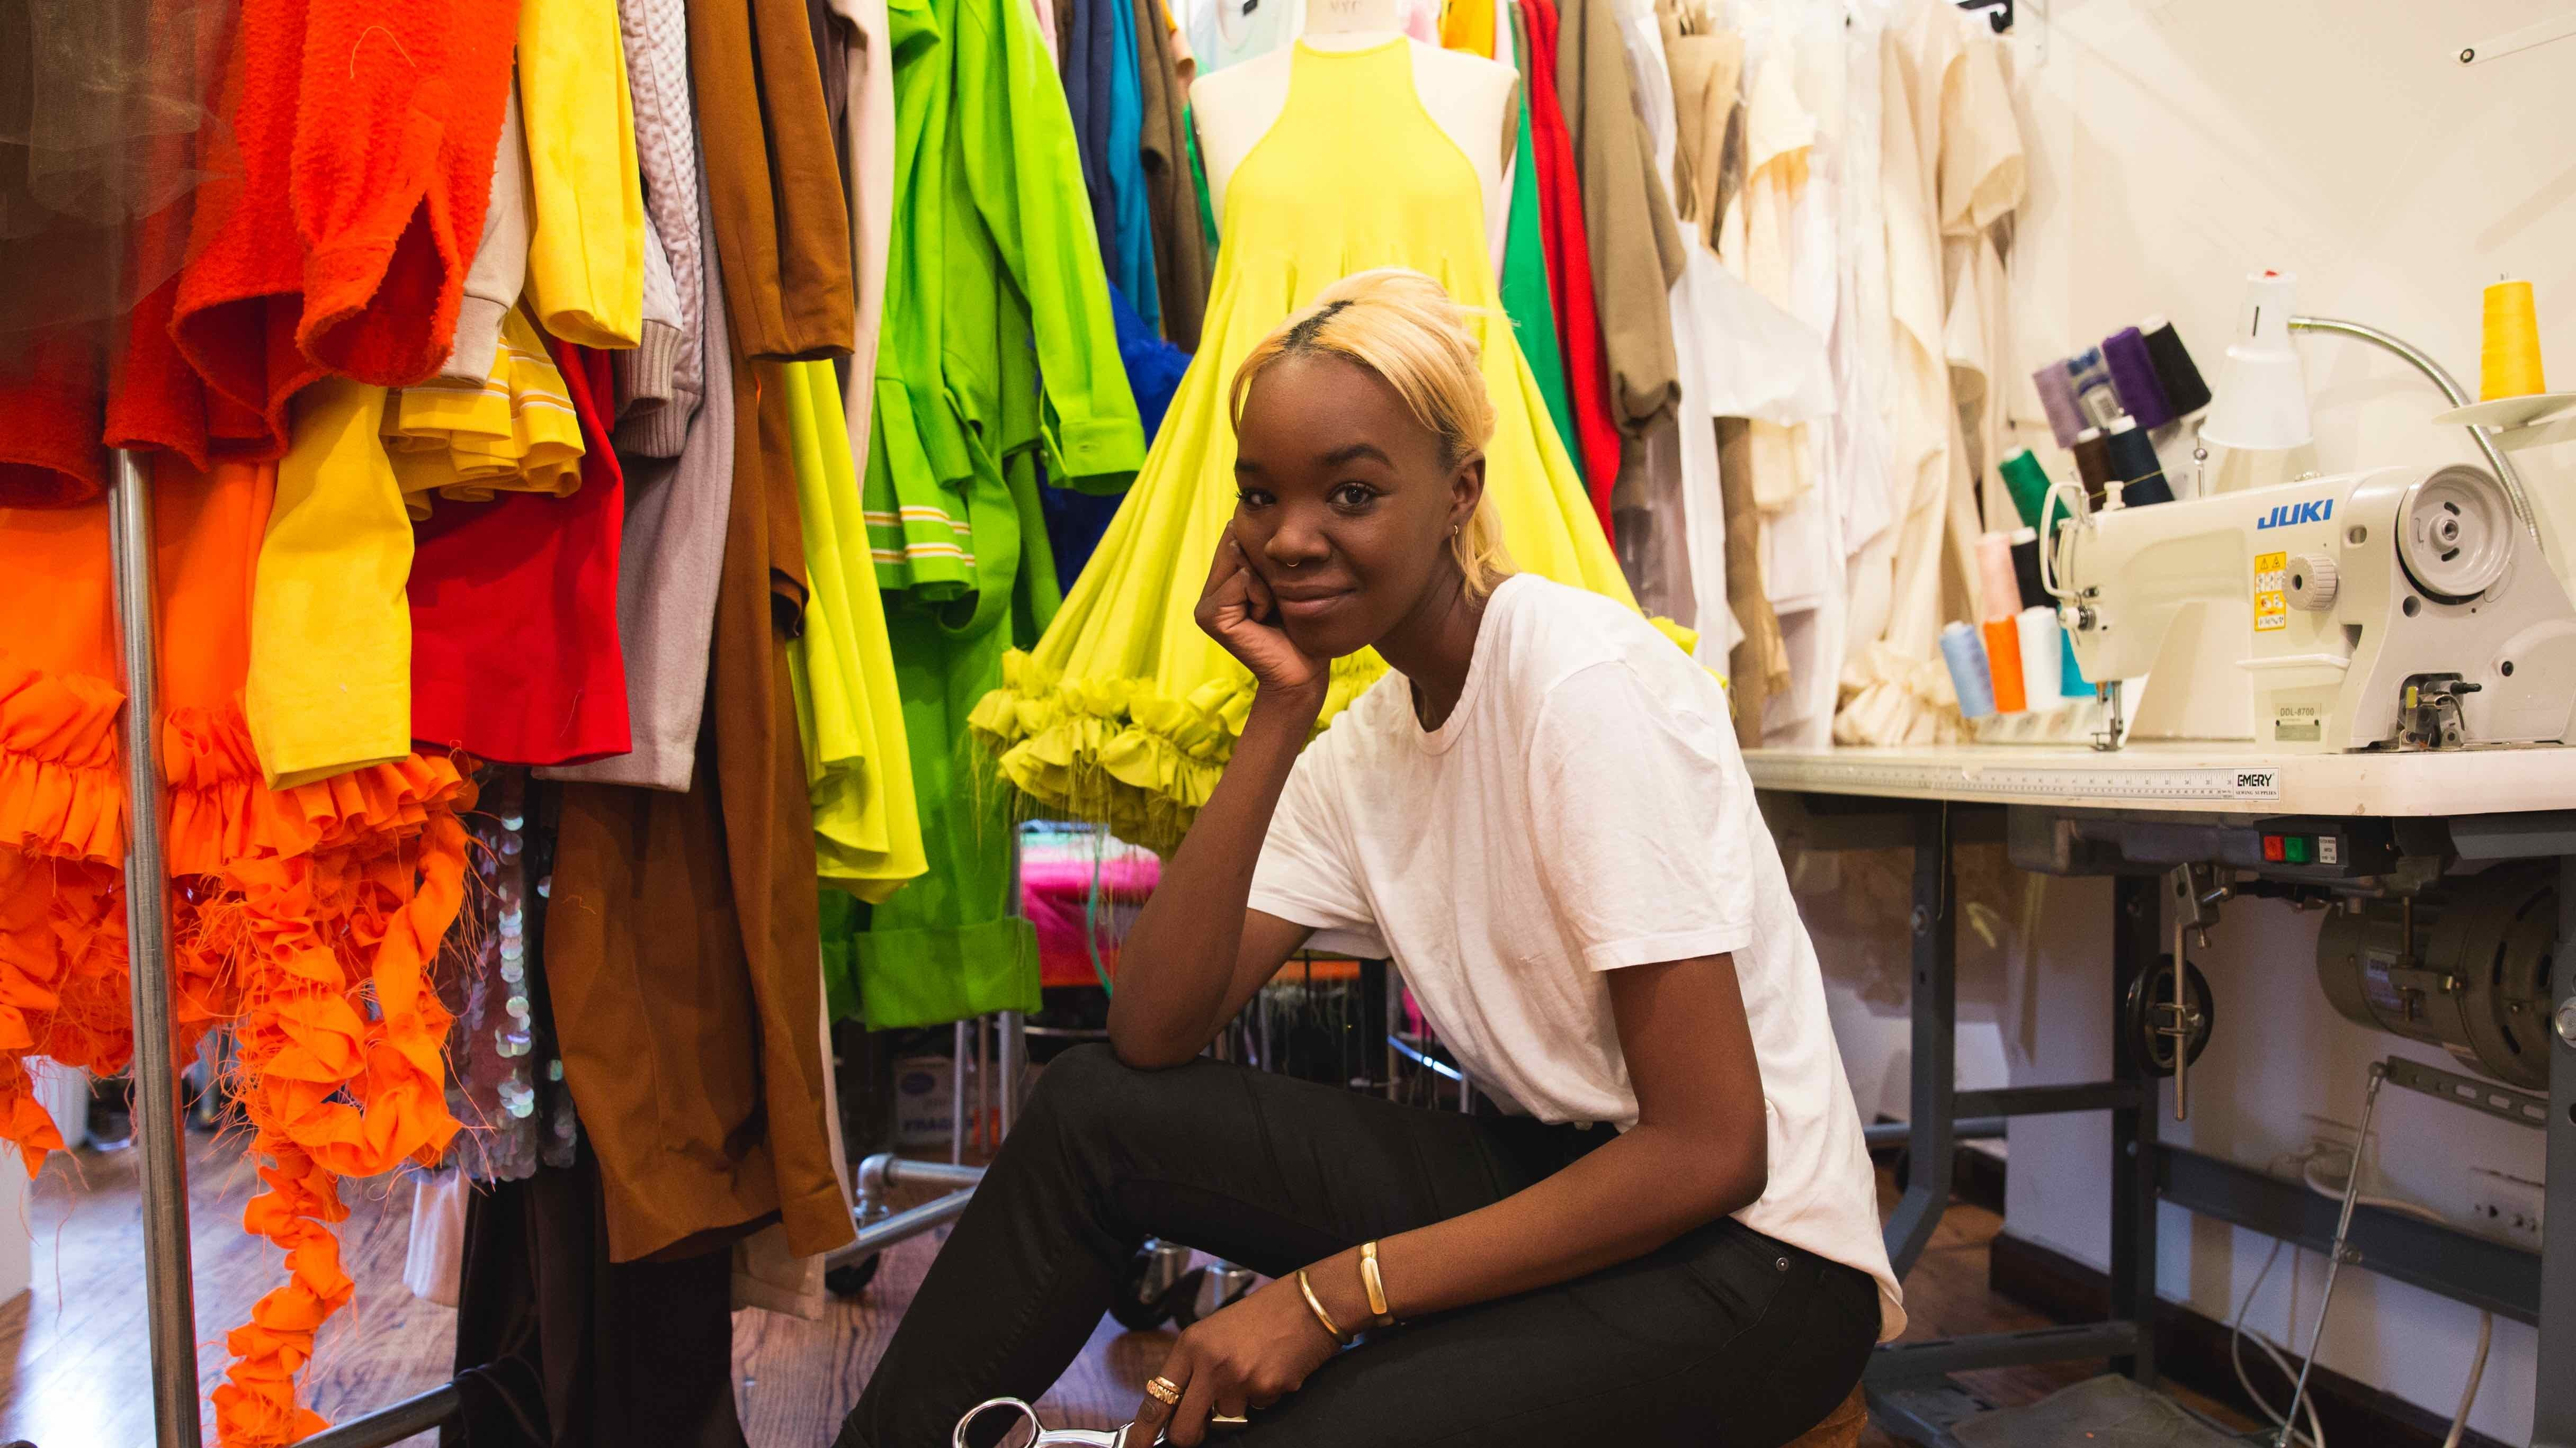 recho omondi is the color-happy designer from bed-stuy changing the fashion game